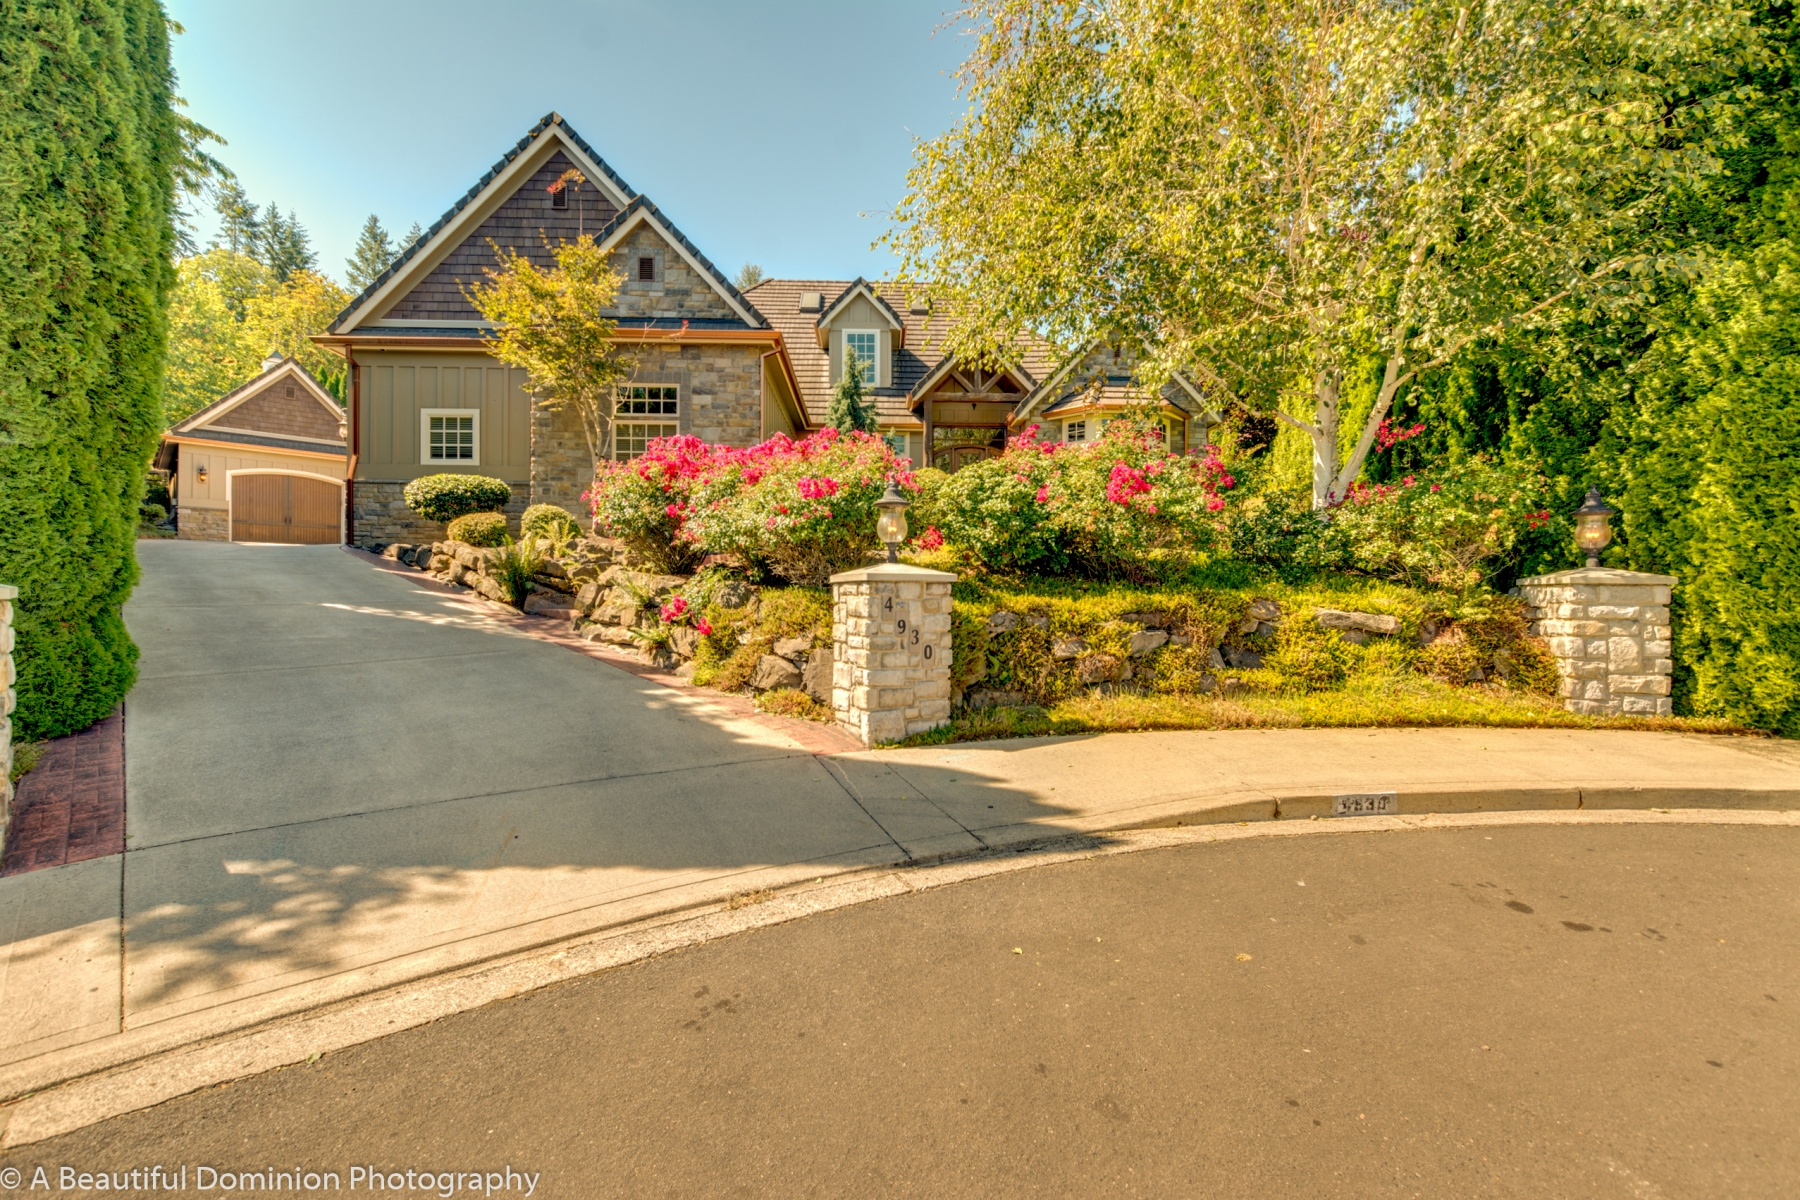 Single Family Home for Sale at Stunning in Lacamas Shores! 4930 NW SIERRA Ct Camas, Washington 98607 United States